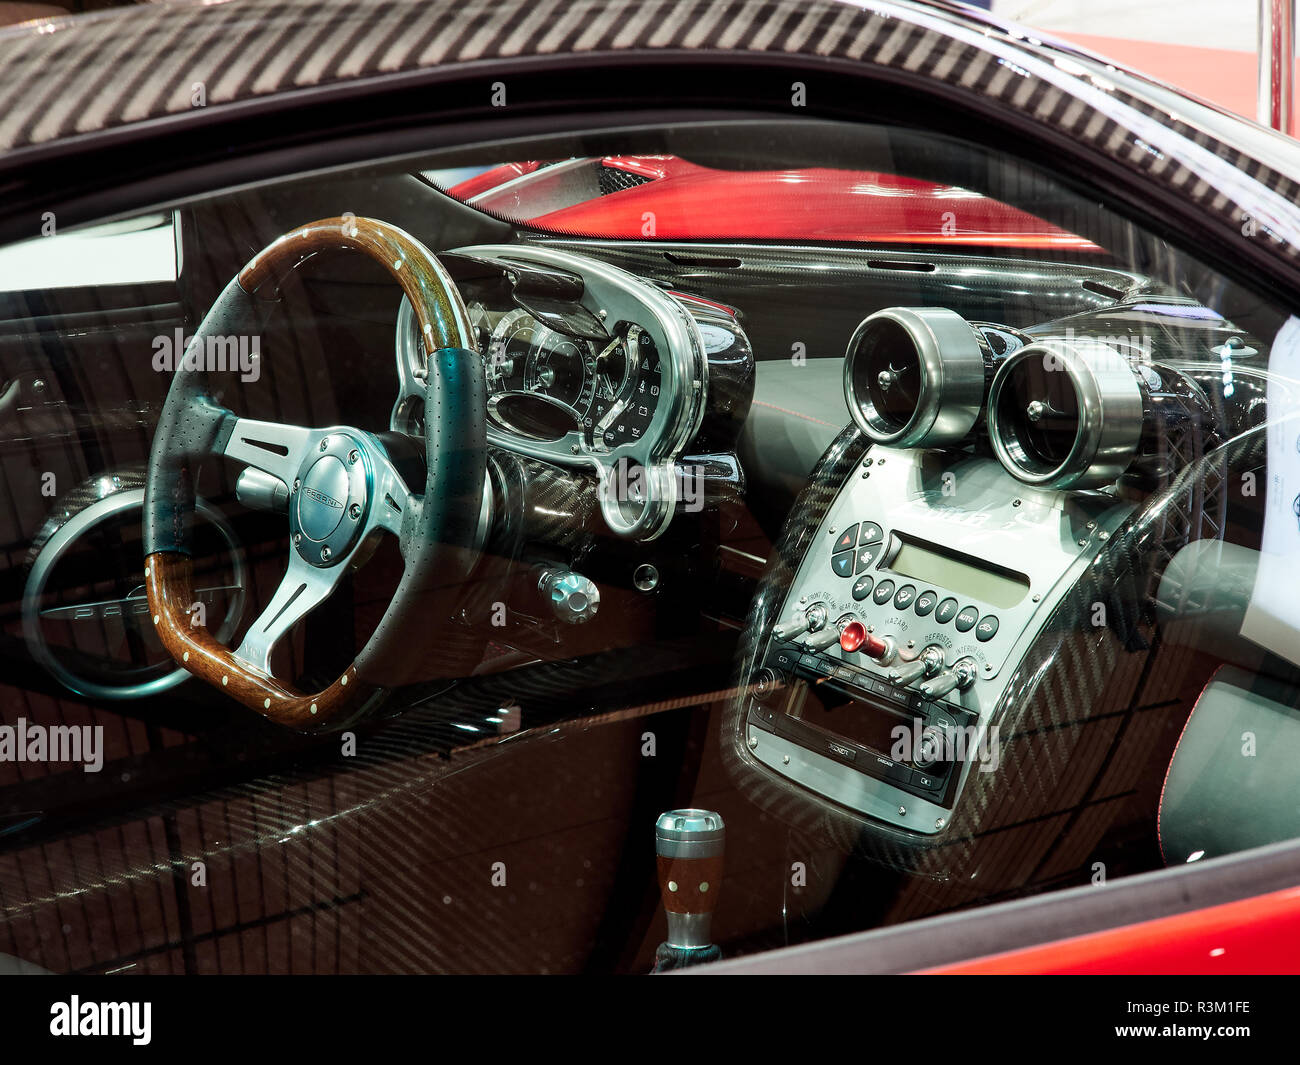 Pagani Stock Photos Pagani Stock Images Page 3 Alamy